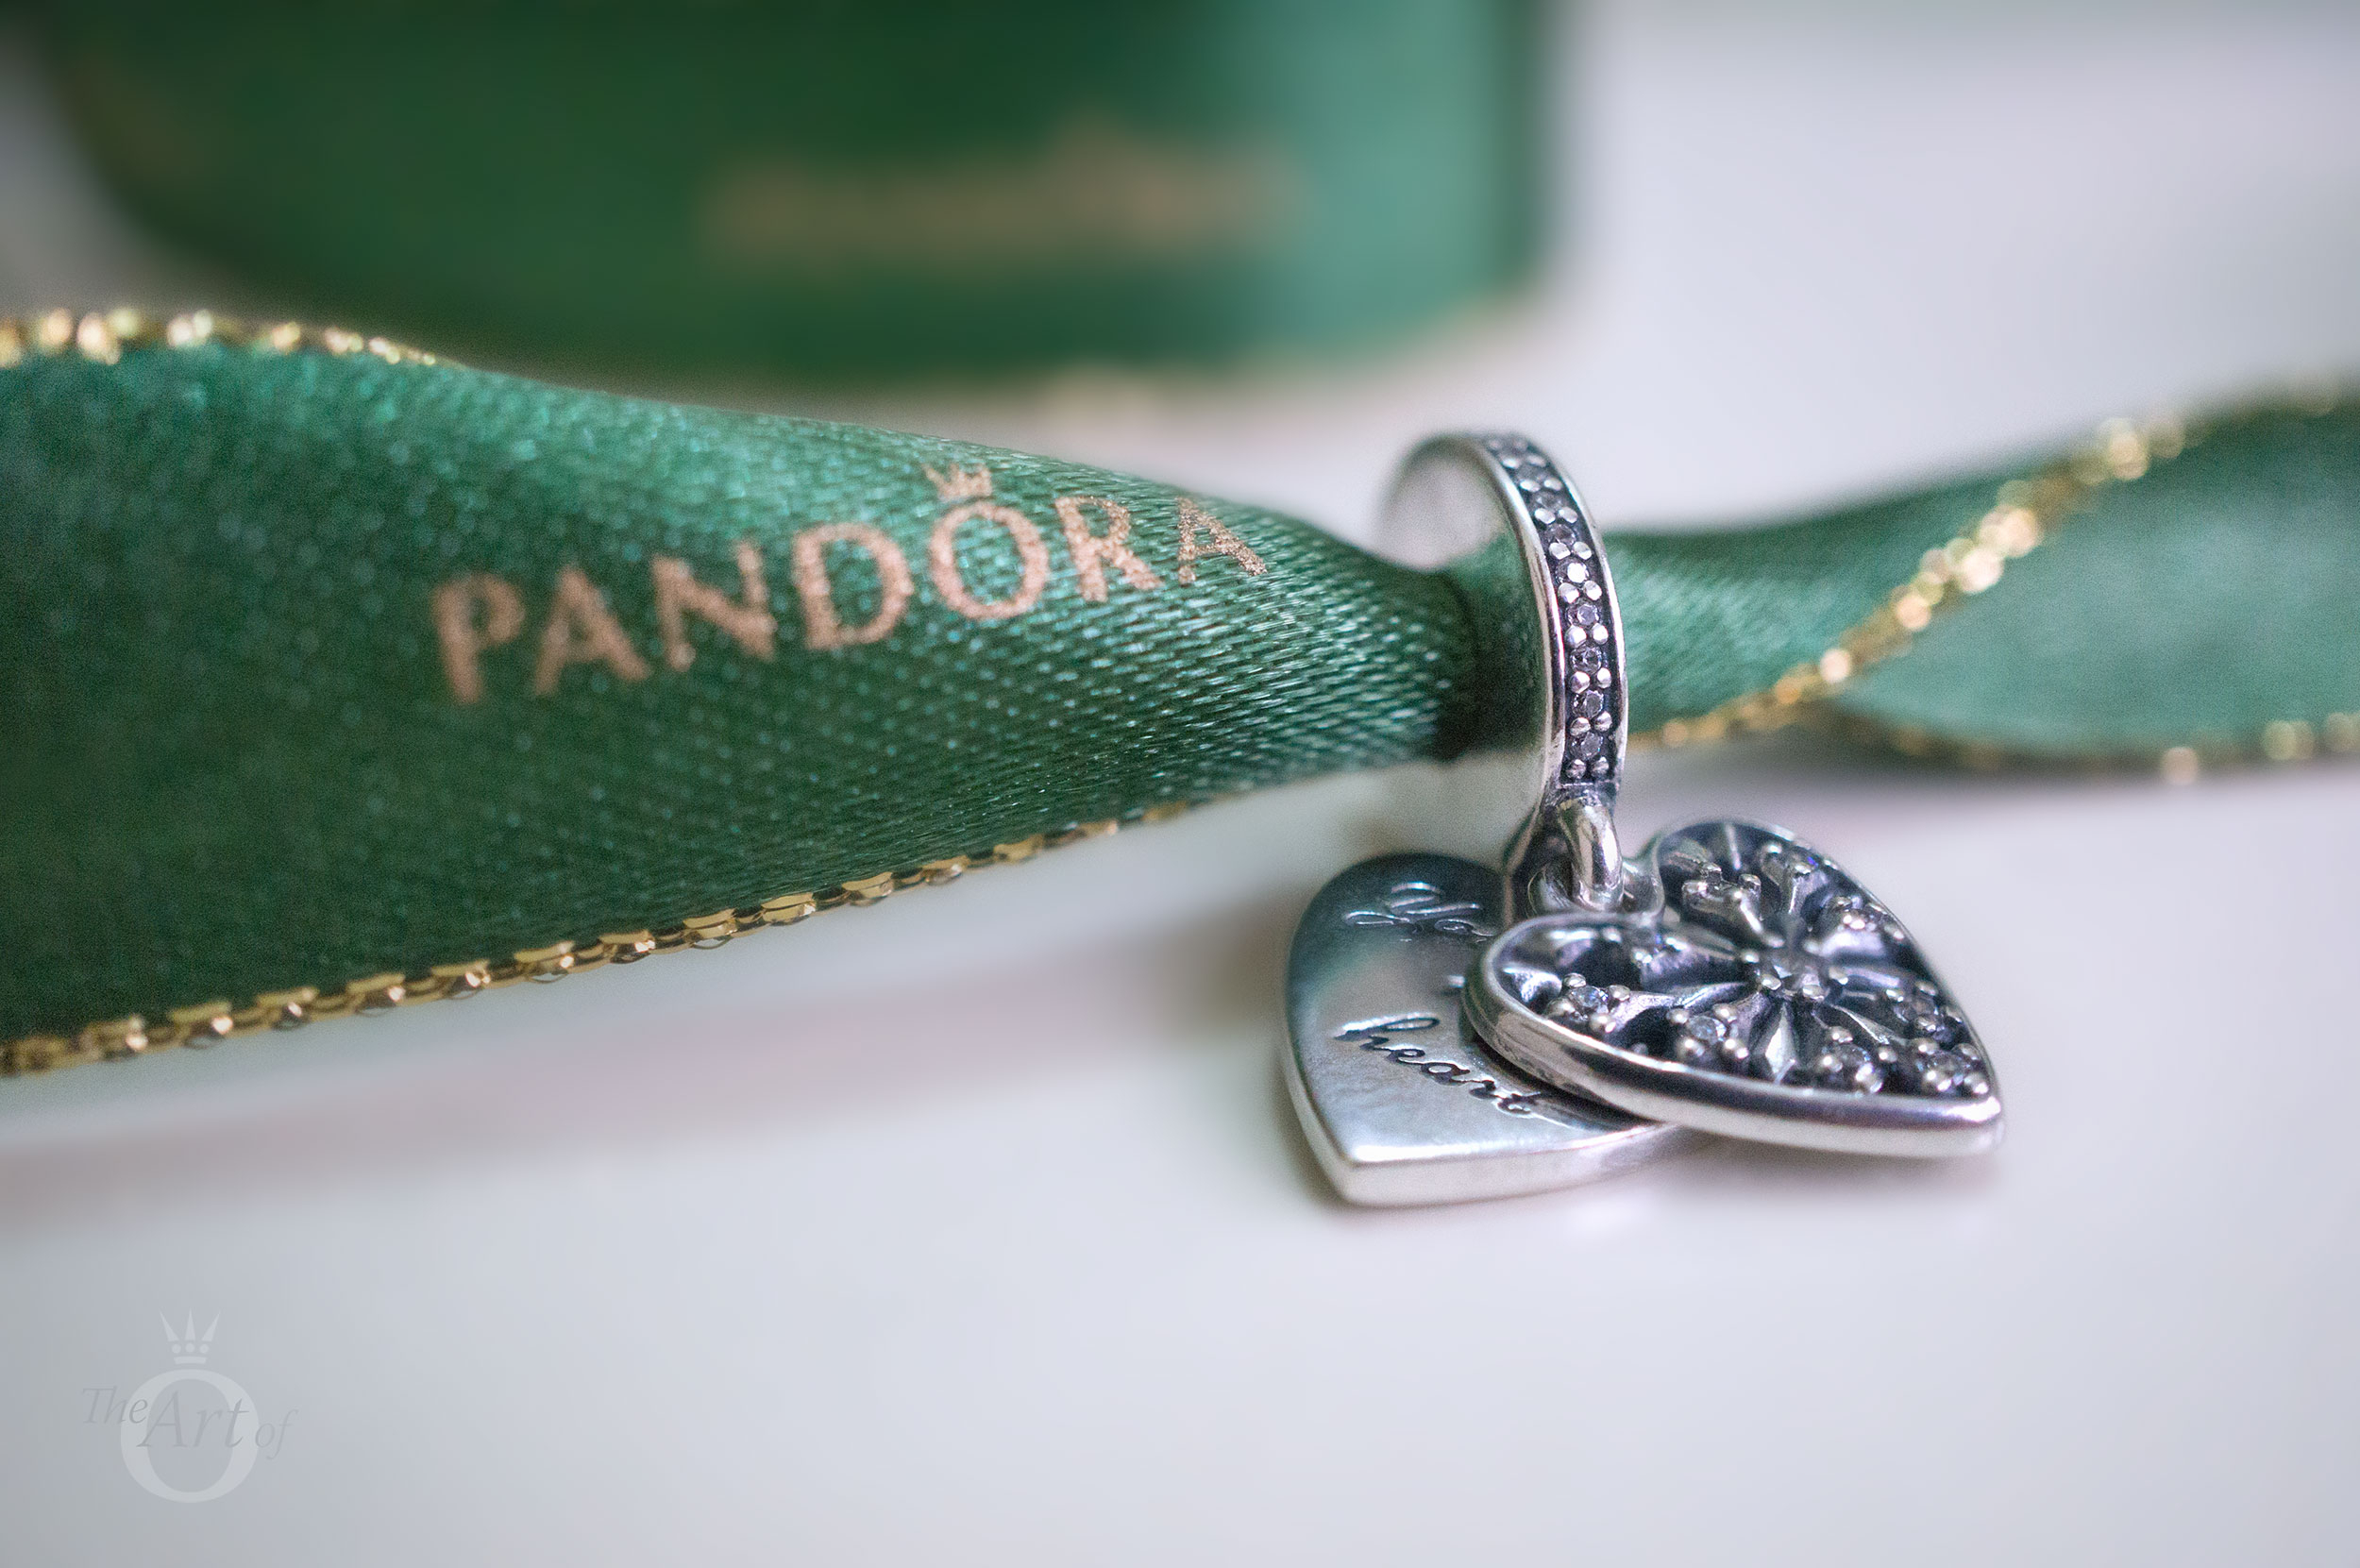 Review: Pandora Heart Of Winter Pendant Charm – The Art Of Pandora In 2019 Pandora Lockets Logo Heart Dangle Charm Necklaces (View 19 of 25)